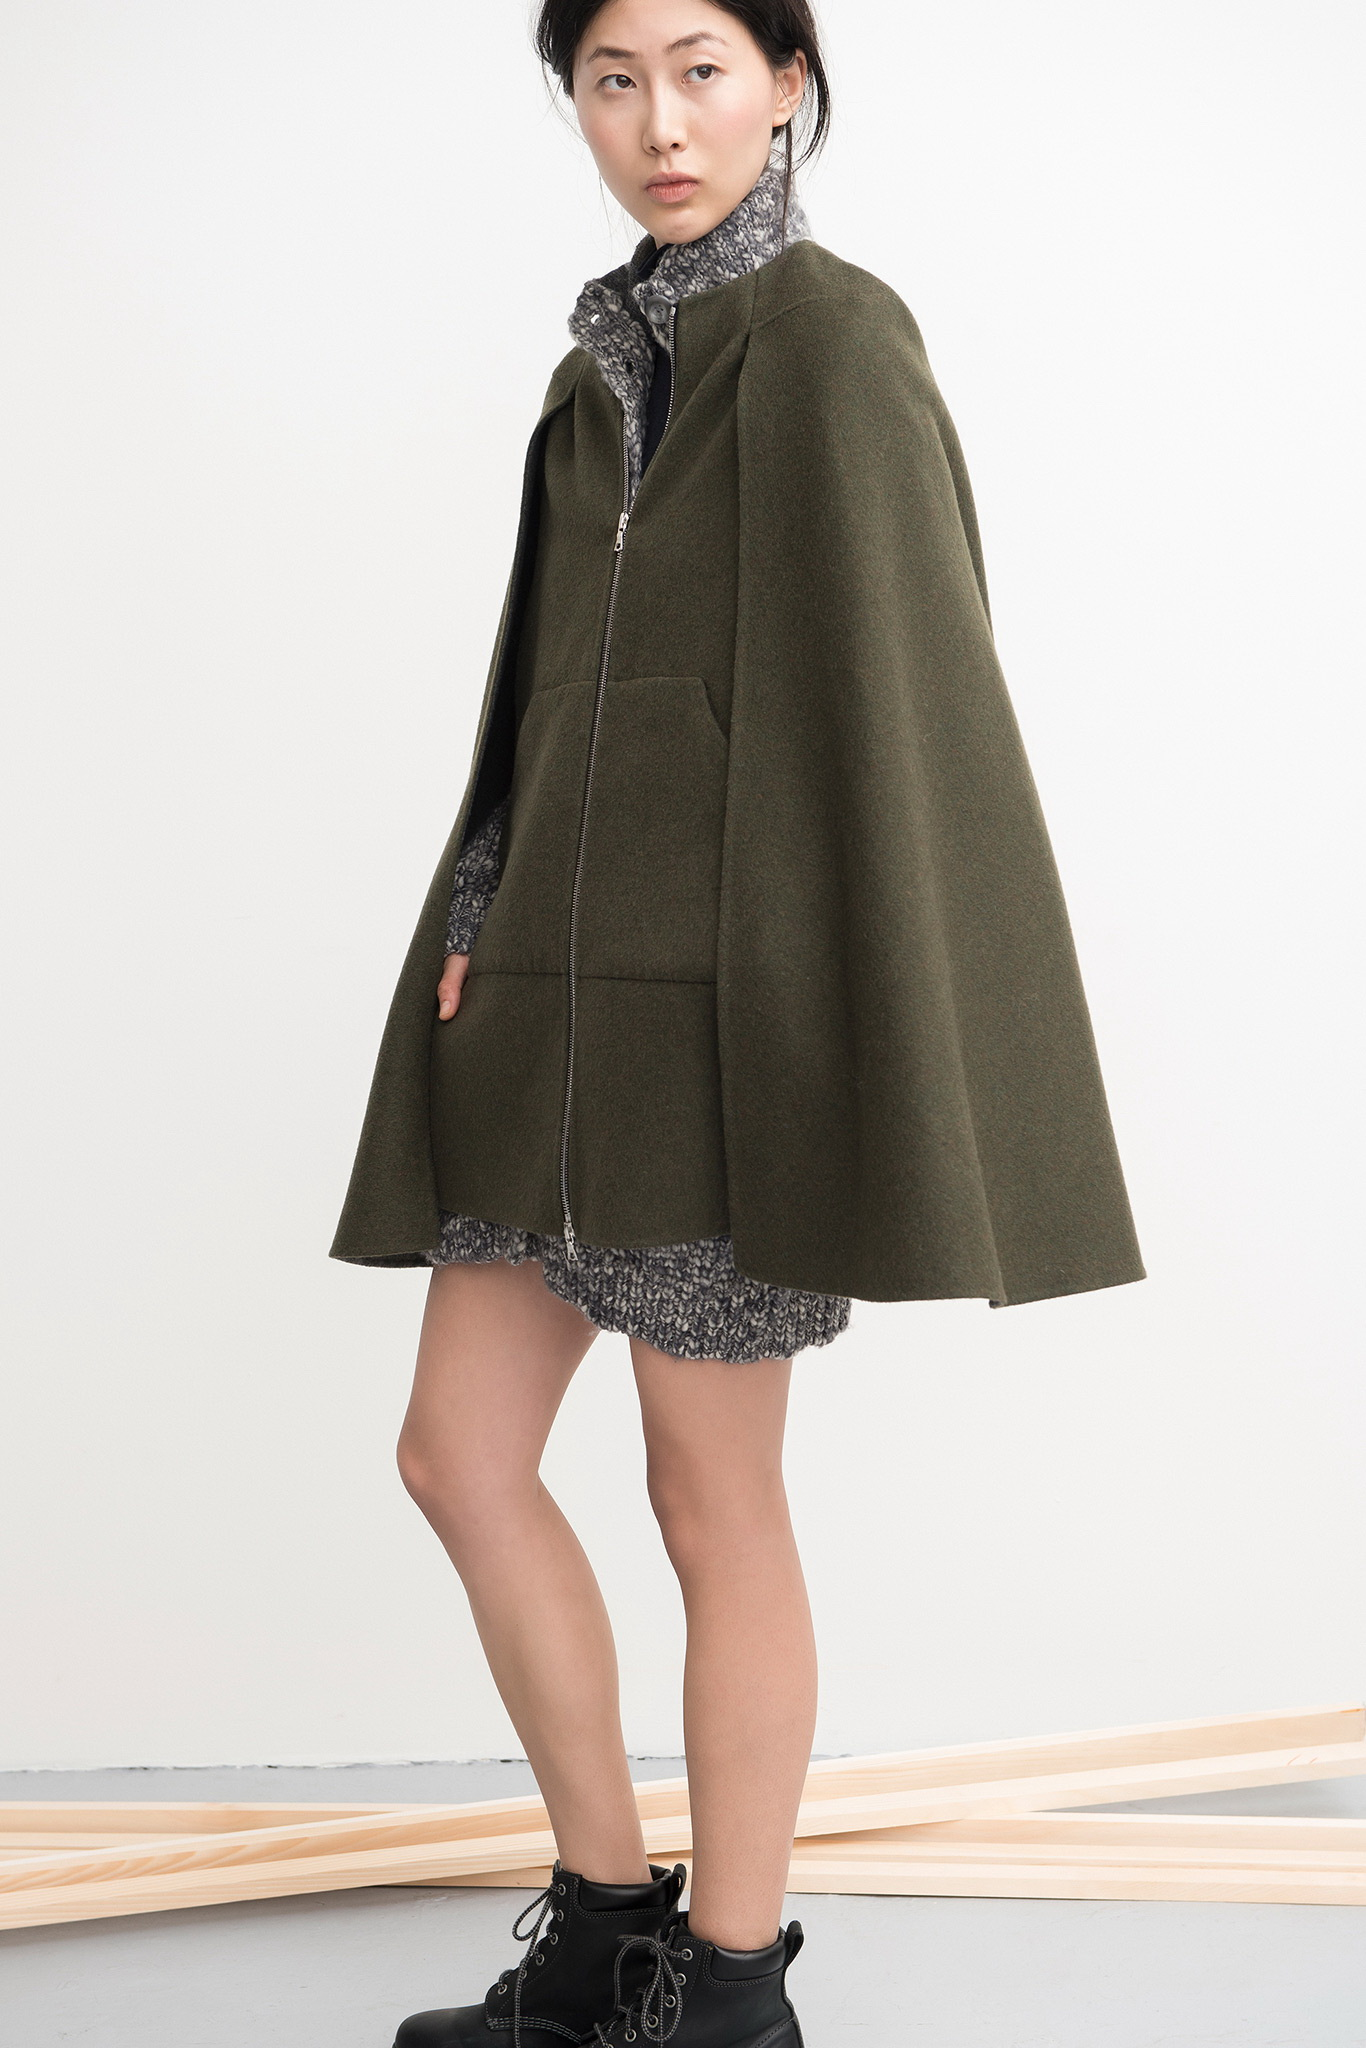 25 cape coats to wear this fall-winter 2017 kydlwme